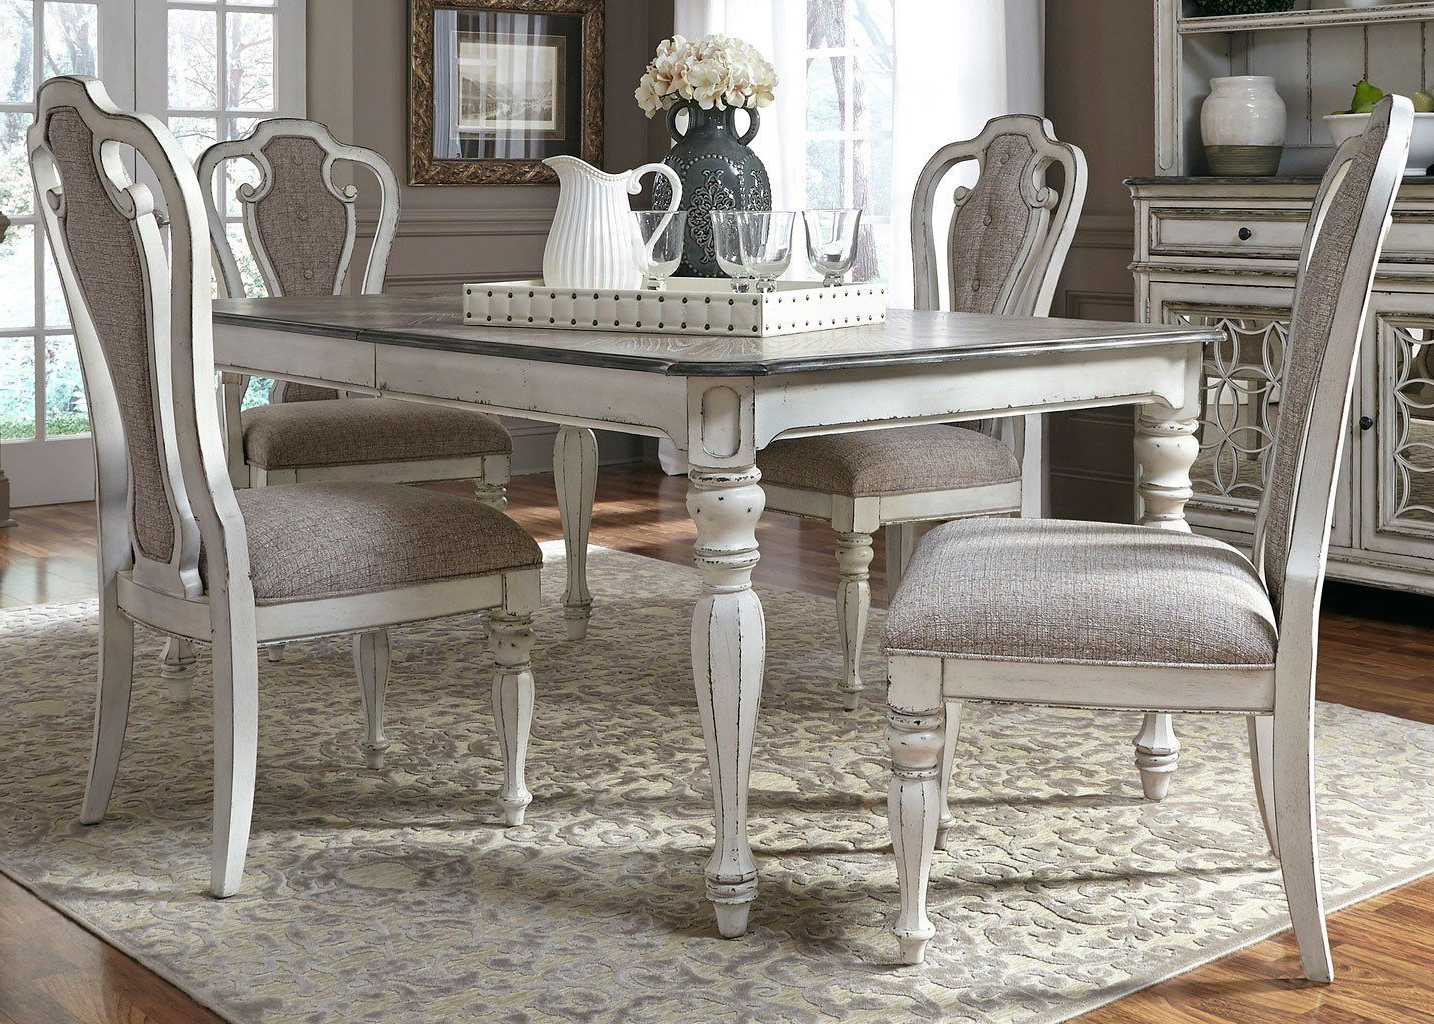 Widely Used Mitzel 3 Piece Dining Sets Regarding Magnolia Manor Dining Room Set W/ 90 Inch Table In  (View 23 of 25)